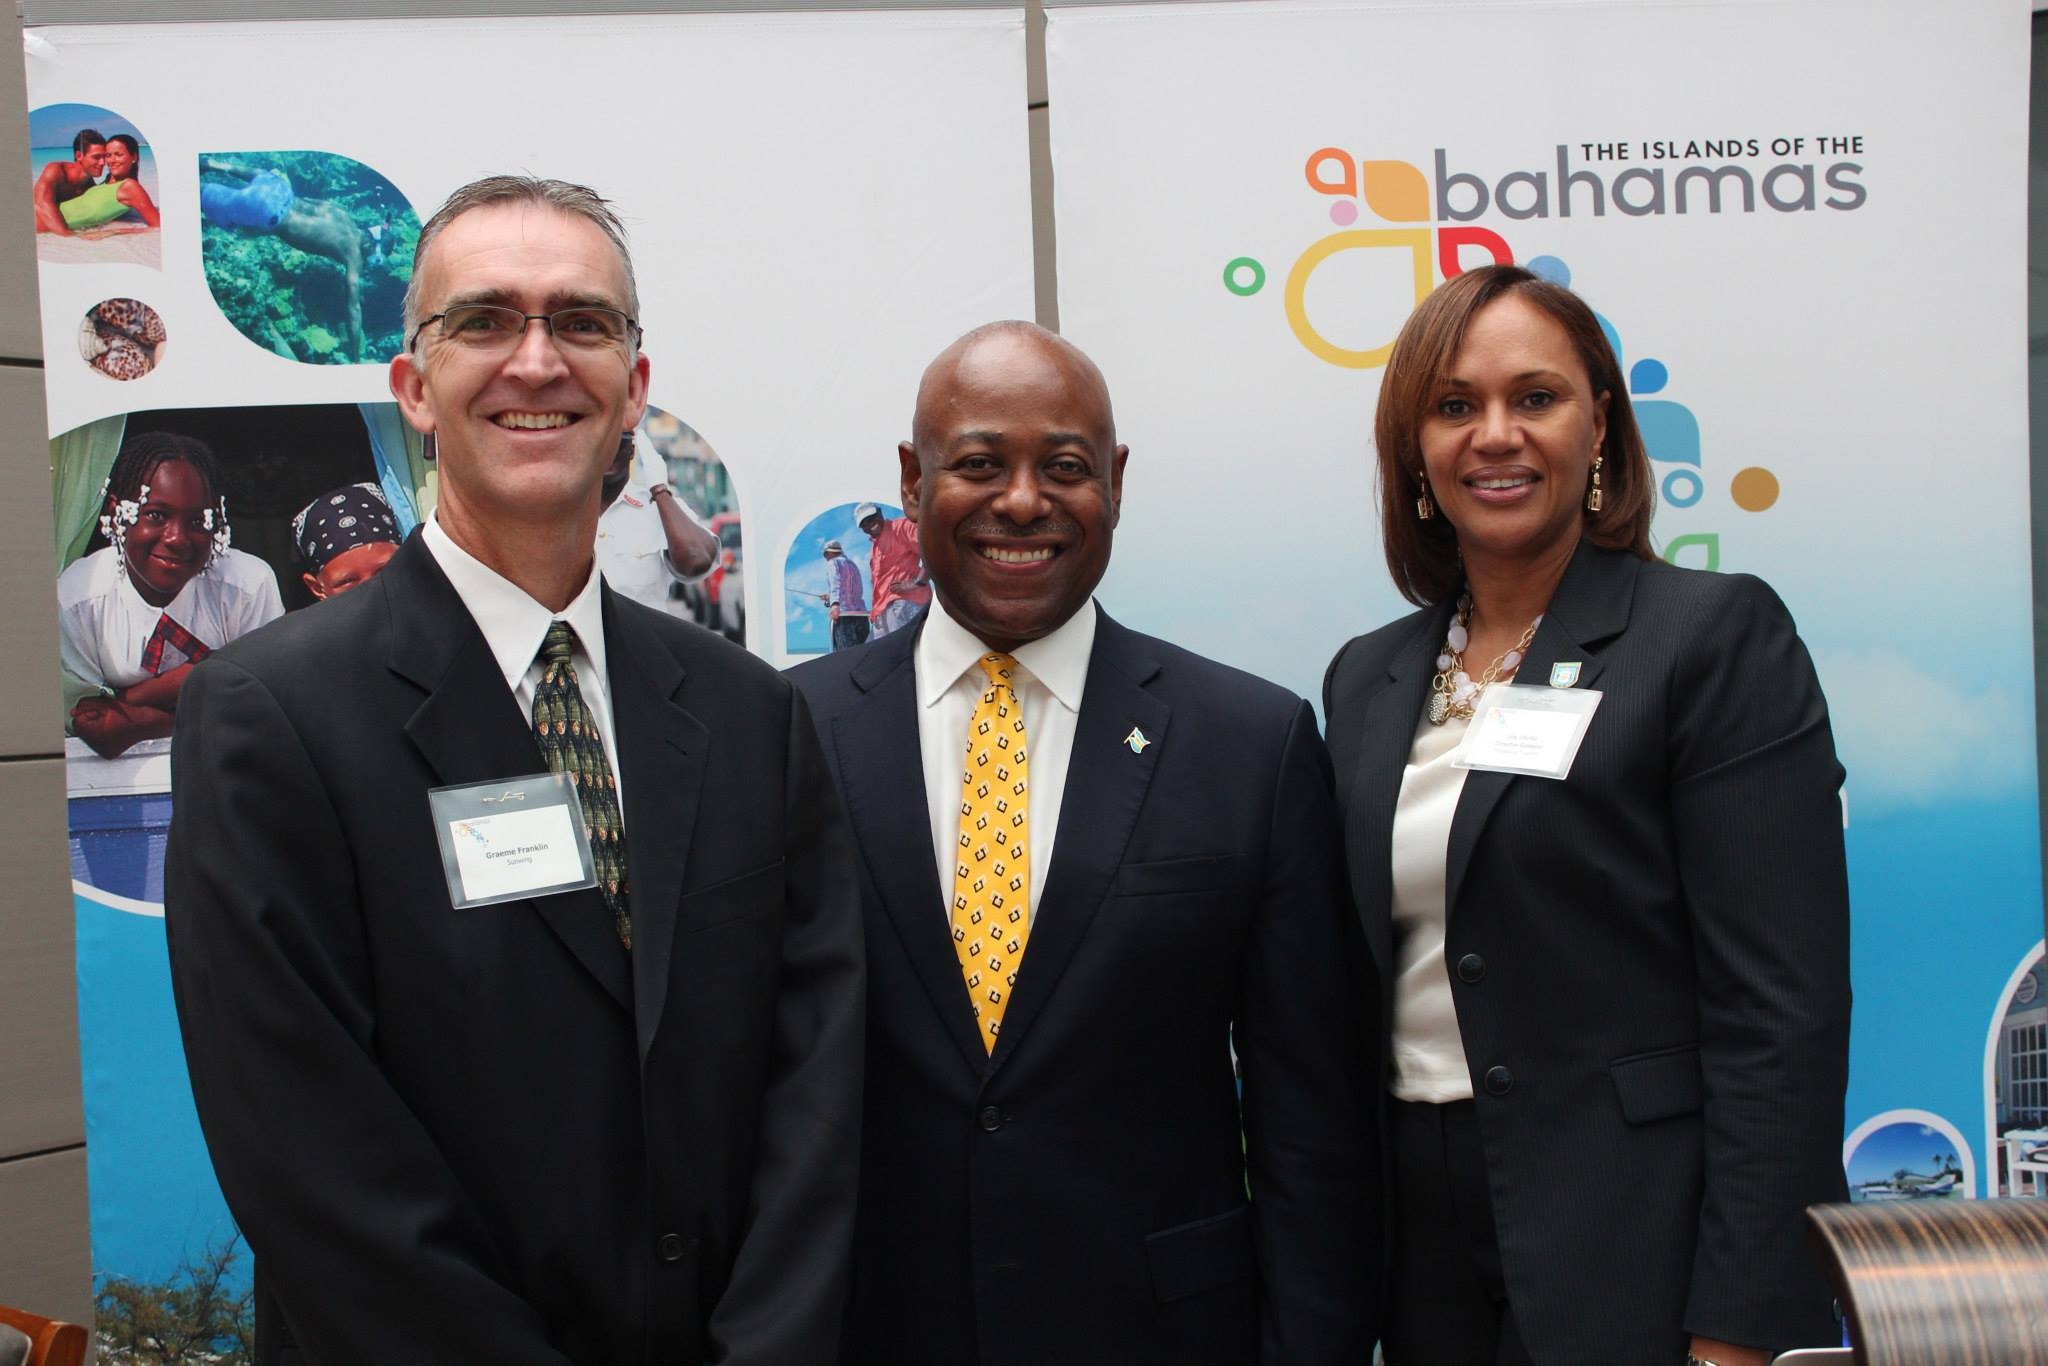 Bahamas Tourism officials visit Vancouver, Canada to Launch Sunwing direct flights . Left to right: Graeme Franklin, Sunwing Travel Group; Minister of Tourism, Obie Wilchcombe; and Director General of Tourism, Joy Jibrilu. (Photo: Robbin Whachell)